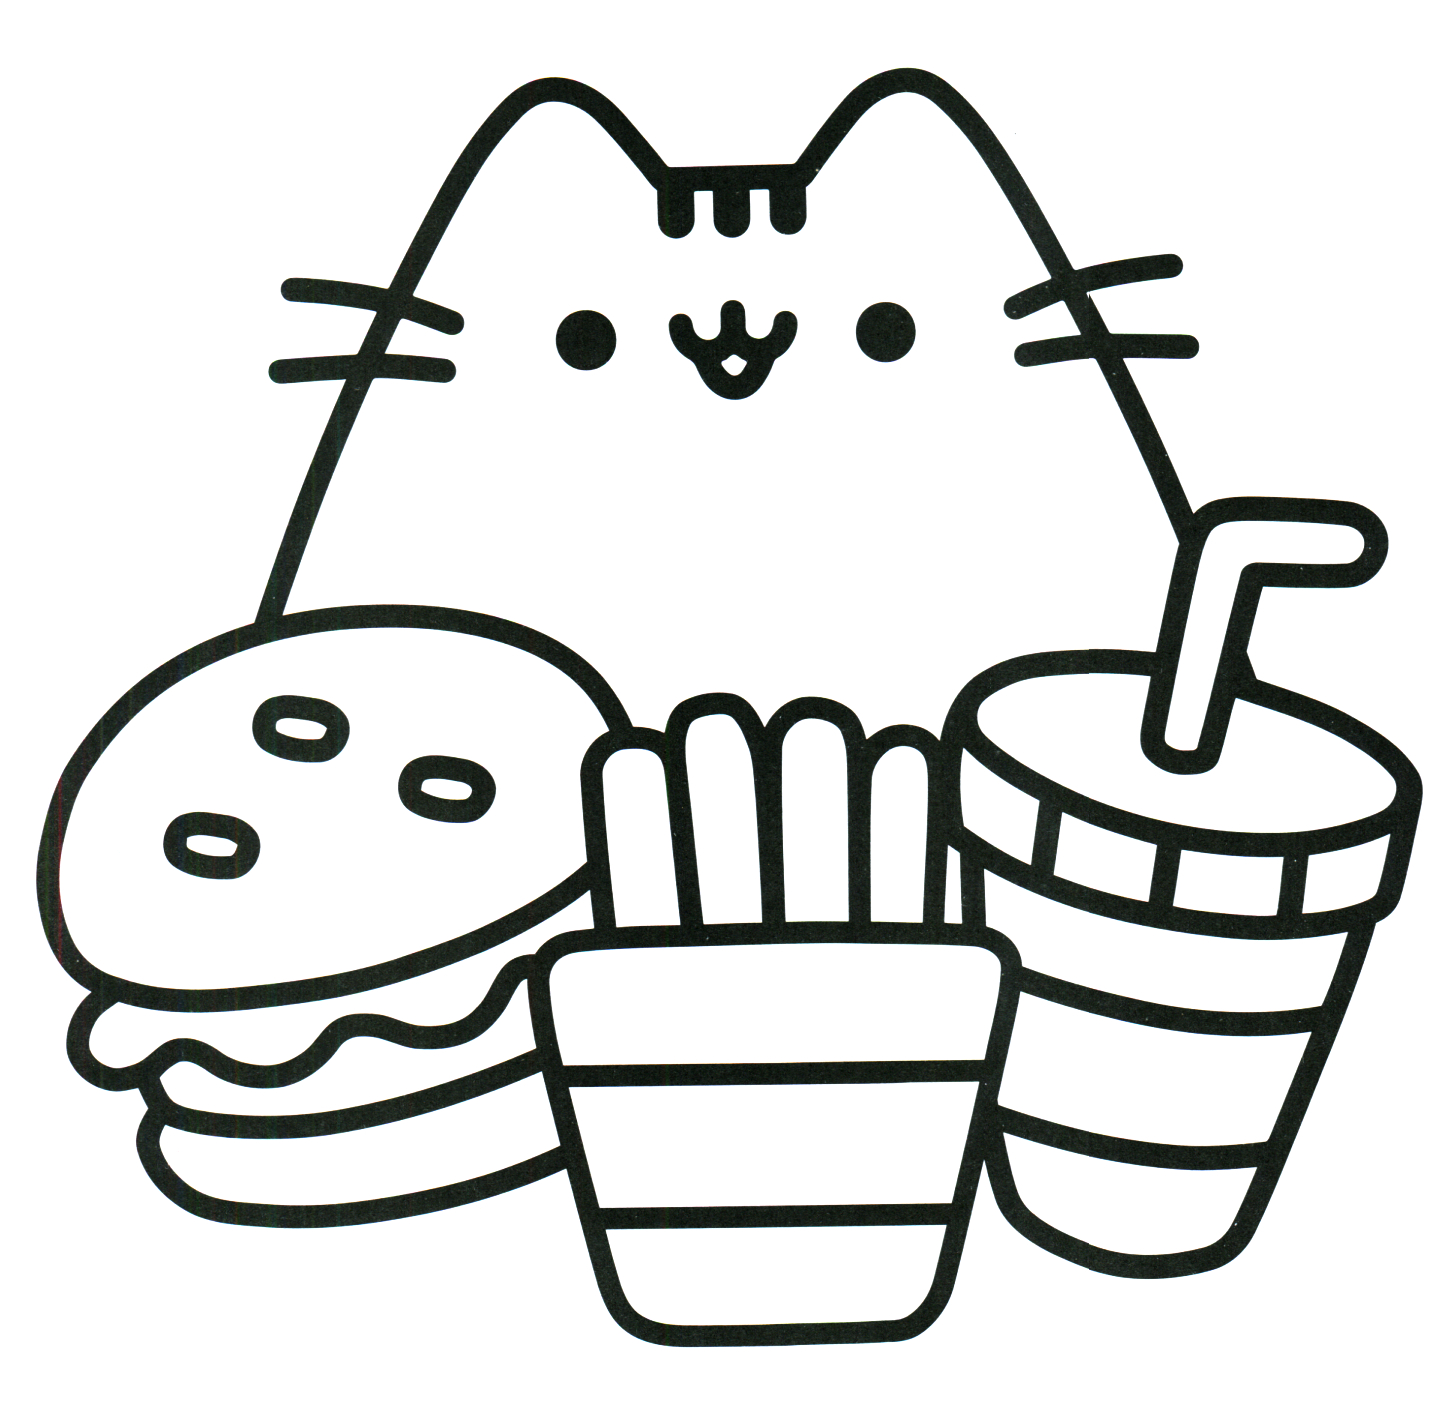 Cute Coloring Pages to Print Download 12a - Save it to your computer